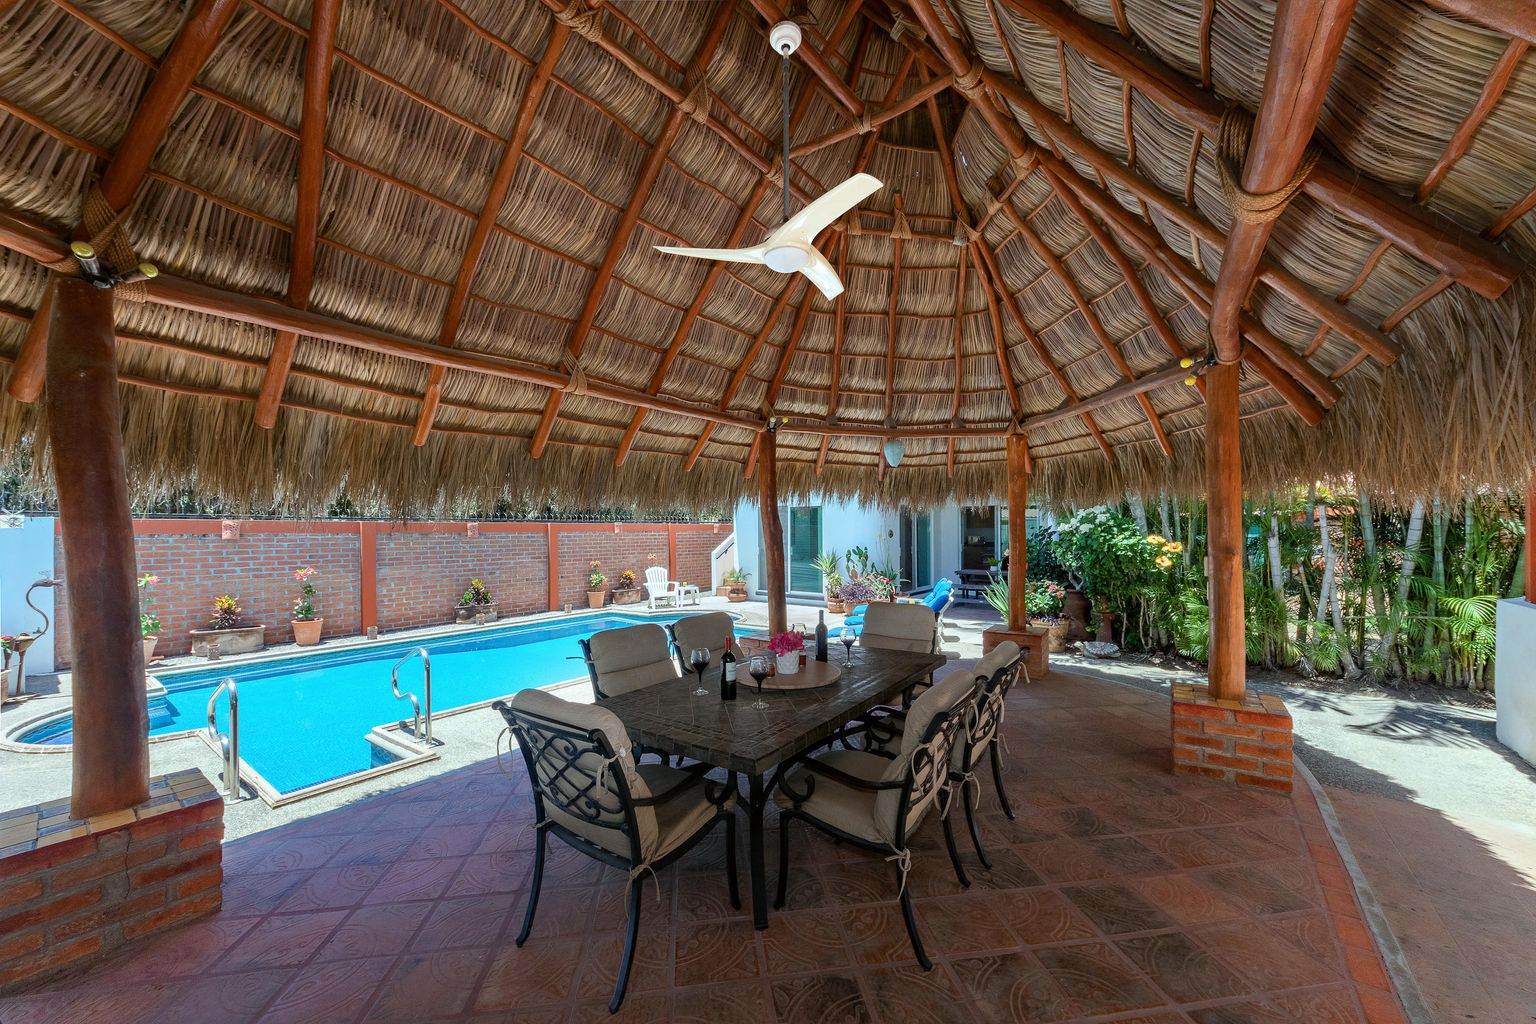 Under the gorgeous palapa